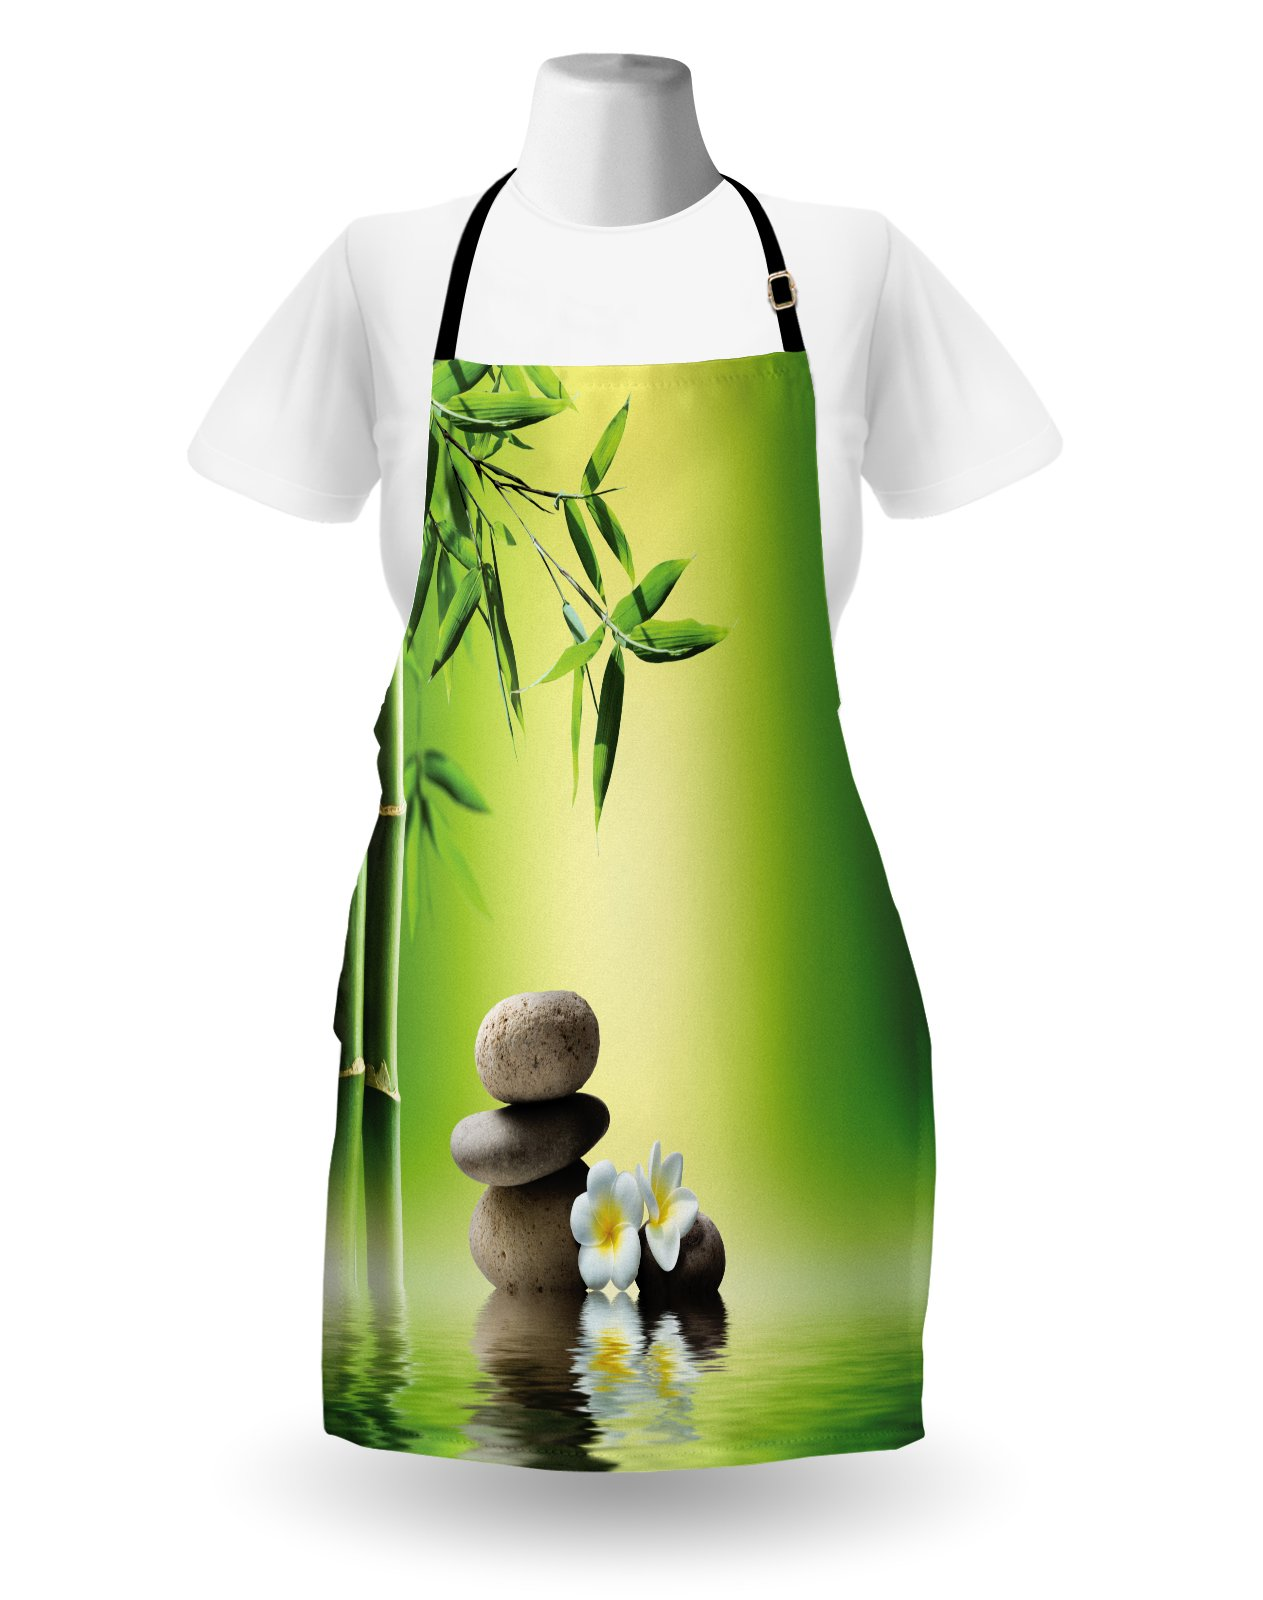 Lunarable Spa Apron, Japanese Therapy Relaxation Stones Frangipani Flowers Bamboo Tree Healthcare Theme, Unisex Kitchen Bib Apron with Adjustable Neck for Cooking Baking Gardening, Green Yellow by Lunarable (Image #2)